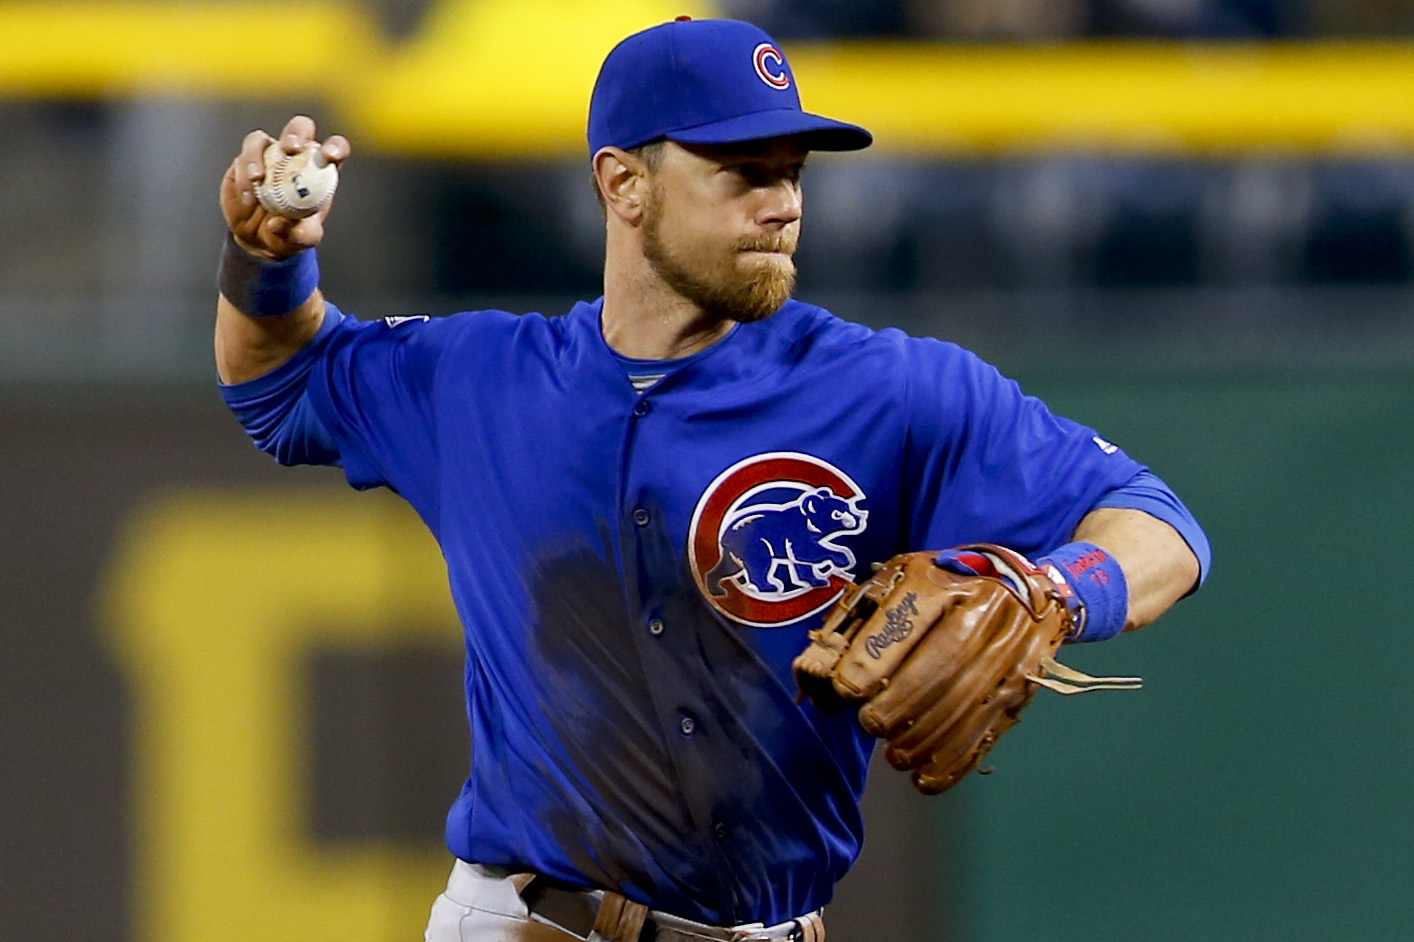 FILE - In this May 2, 2016, file photo, Chicago Cubs third baseman Tommy La Stella throws during the team's baseball game against the Pittsburgh Pirates in Pittsburgh. La Stella has refused to report to Triple-A Iowa after being optioned to the minors nea